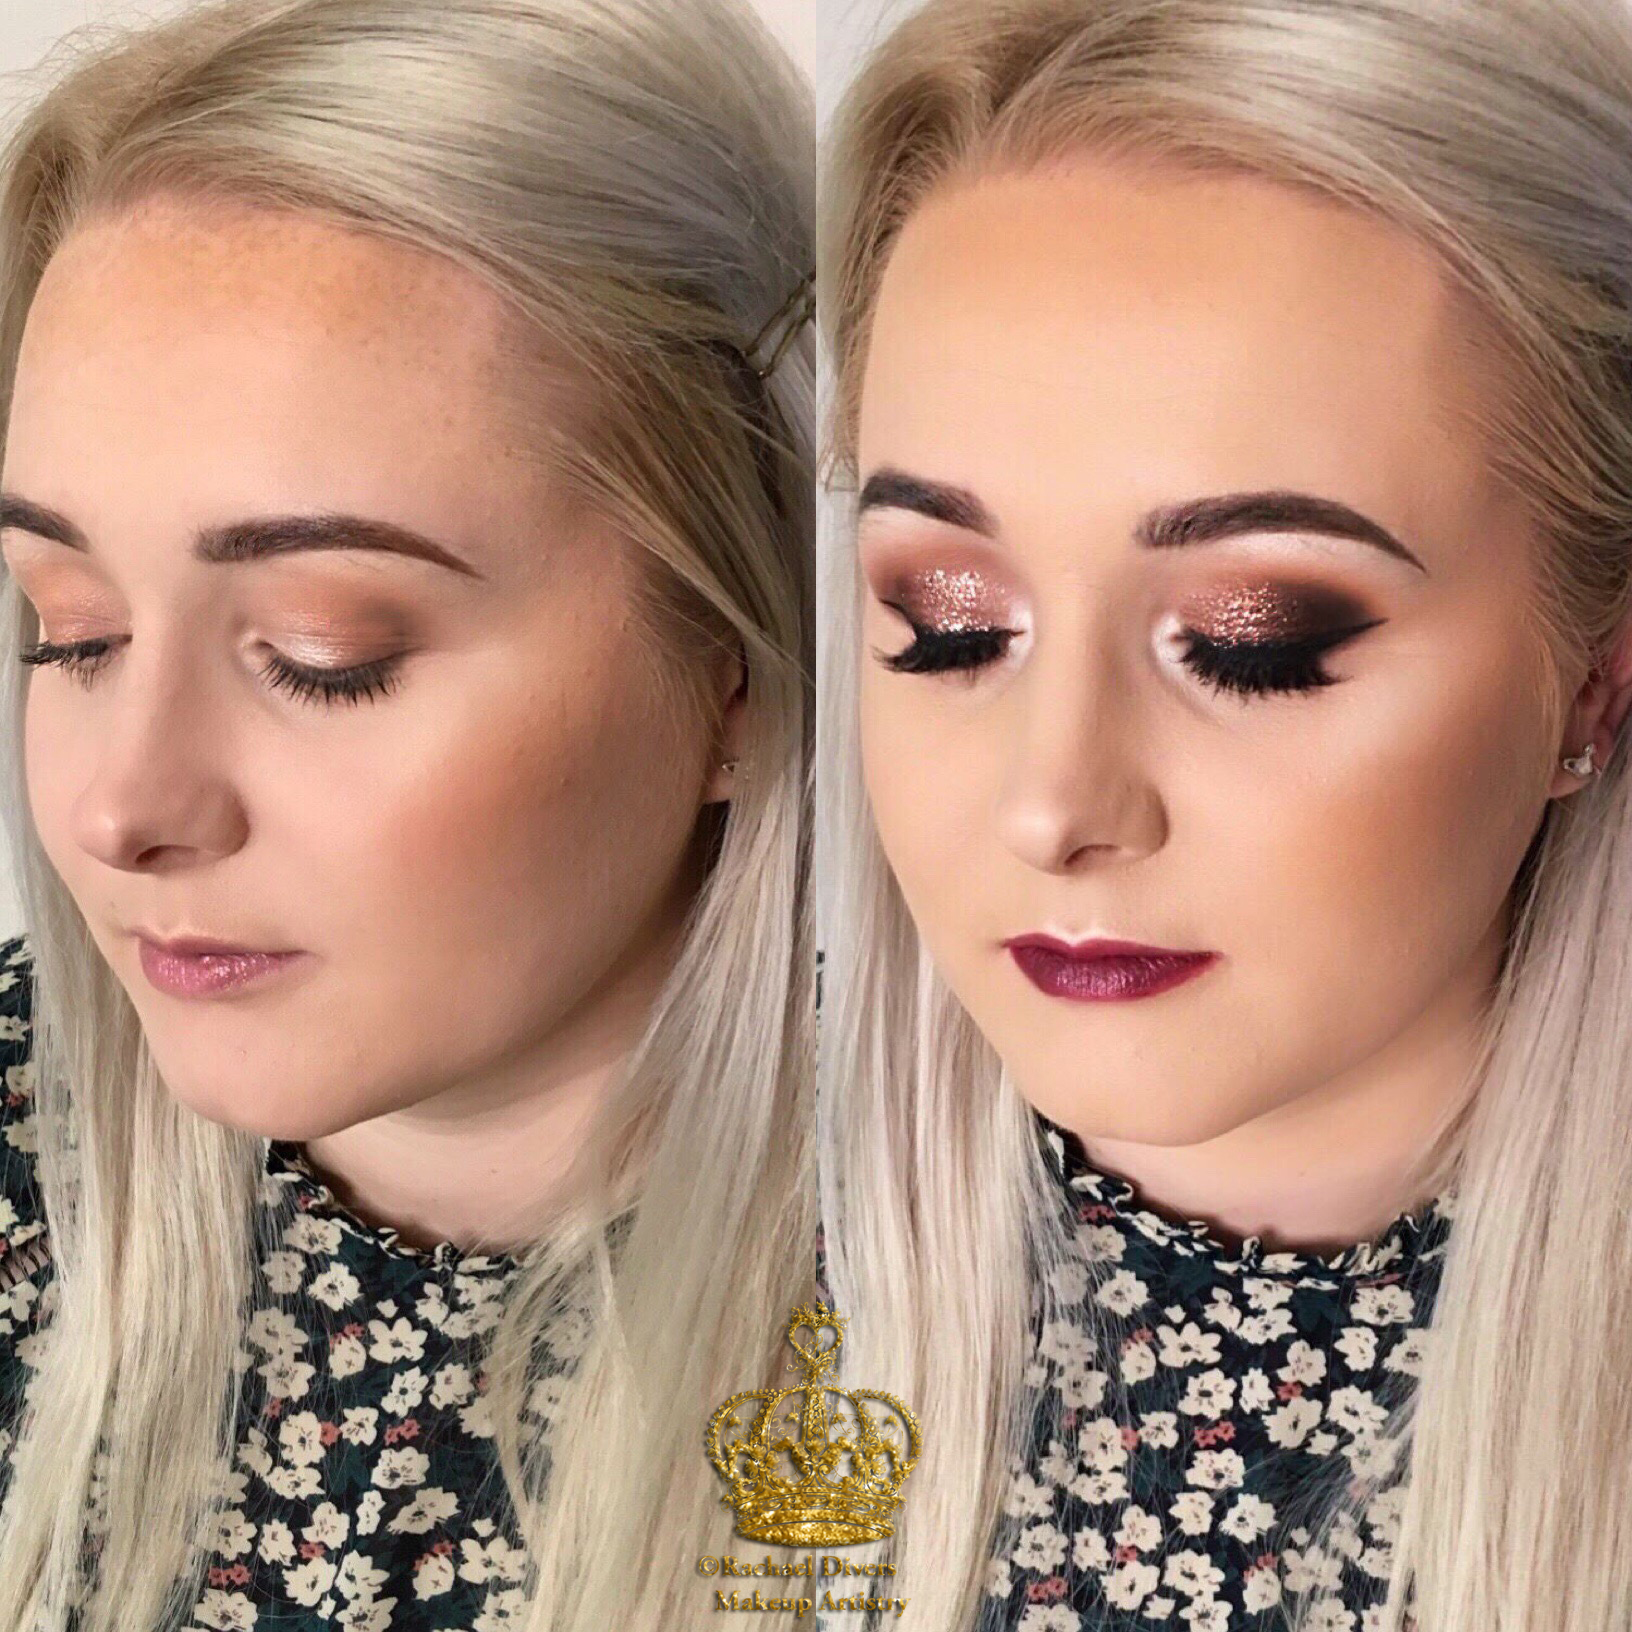 evening makeup images before and after | makewalls.co